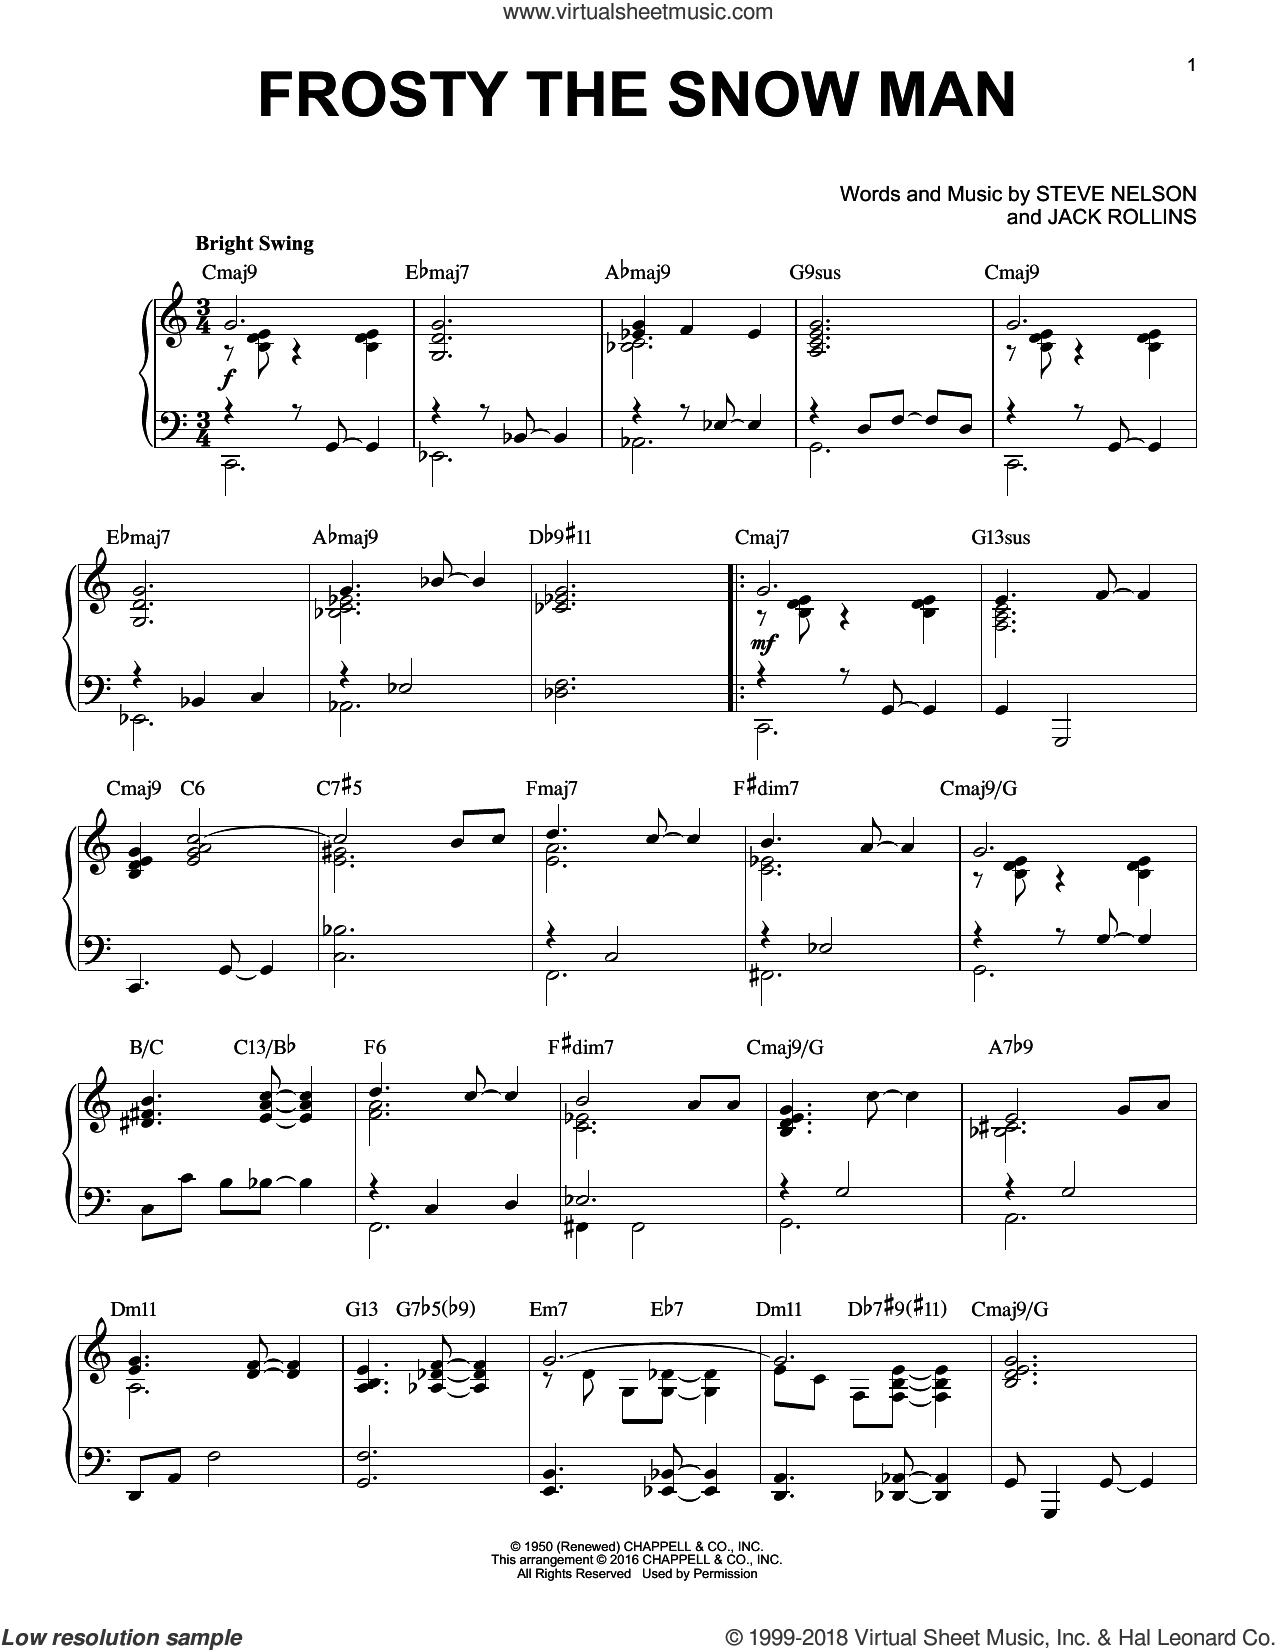 Frosty The Snow Man sheet music for piano solo by Steve Nelson and Jack Rollins, intermediate